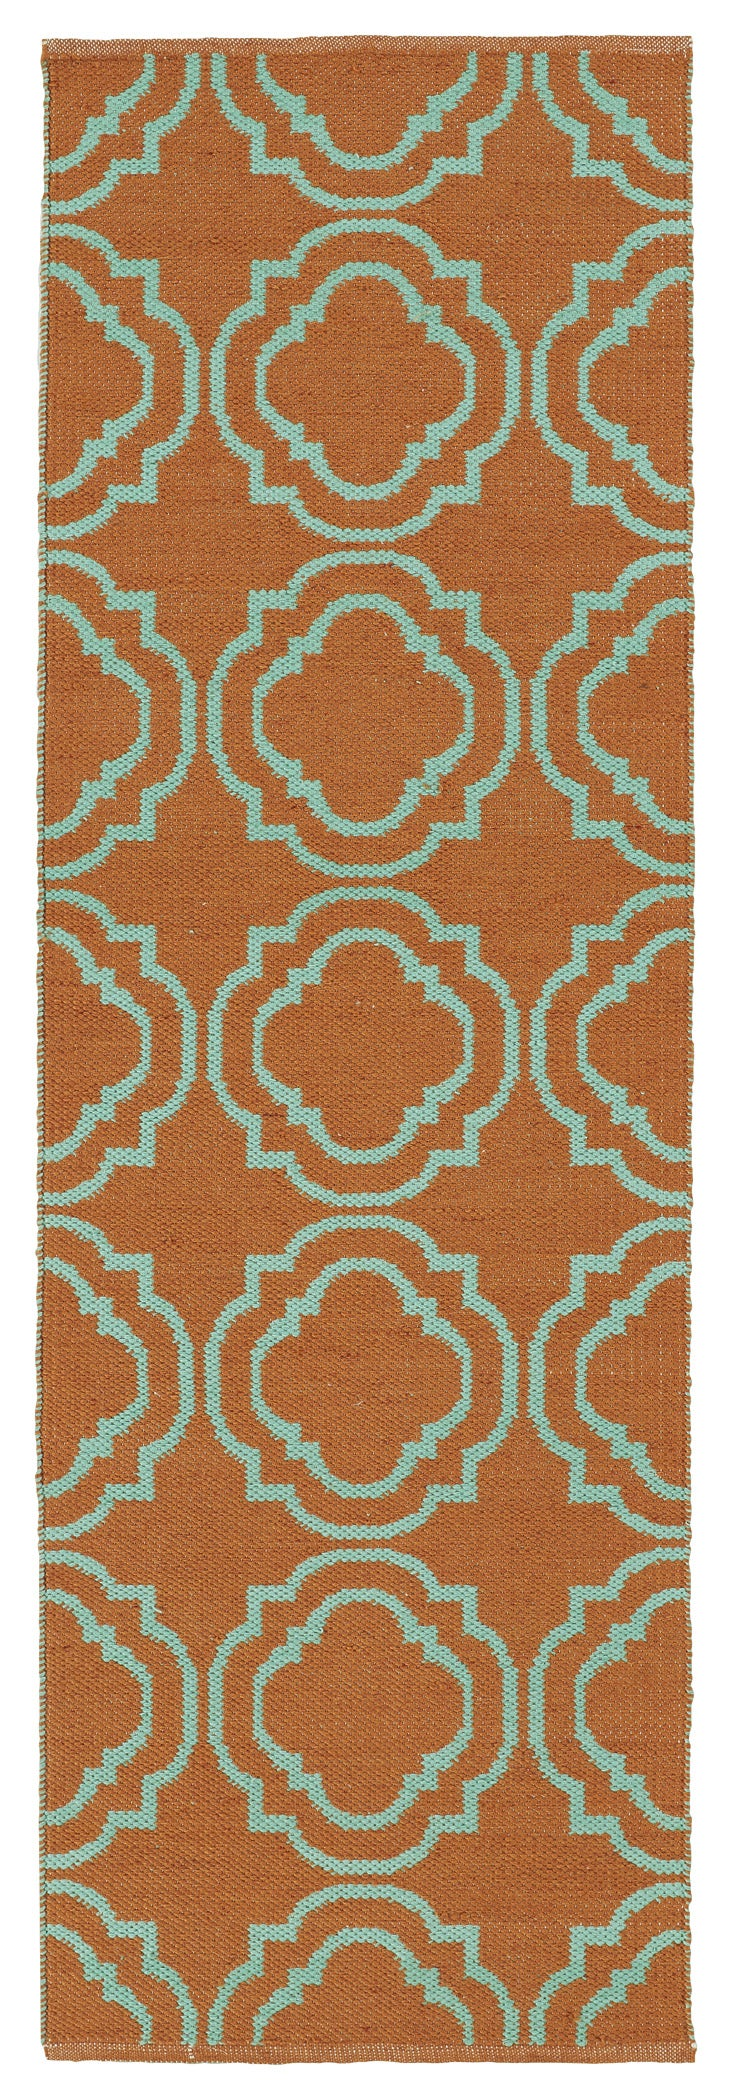 shop indoor outdoor laguna orange and turquoise geo flat weave rug 2 39 0 x 6 39 0 free shipping. Black Bedroom Furniture Sets. Home Design Ideas